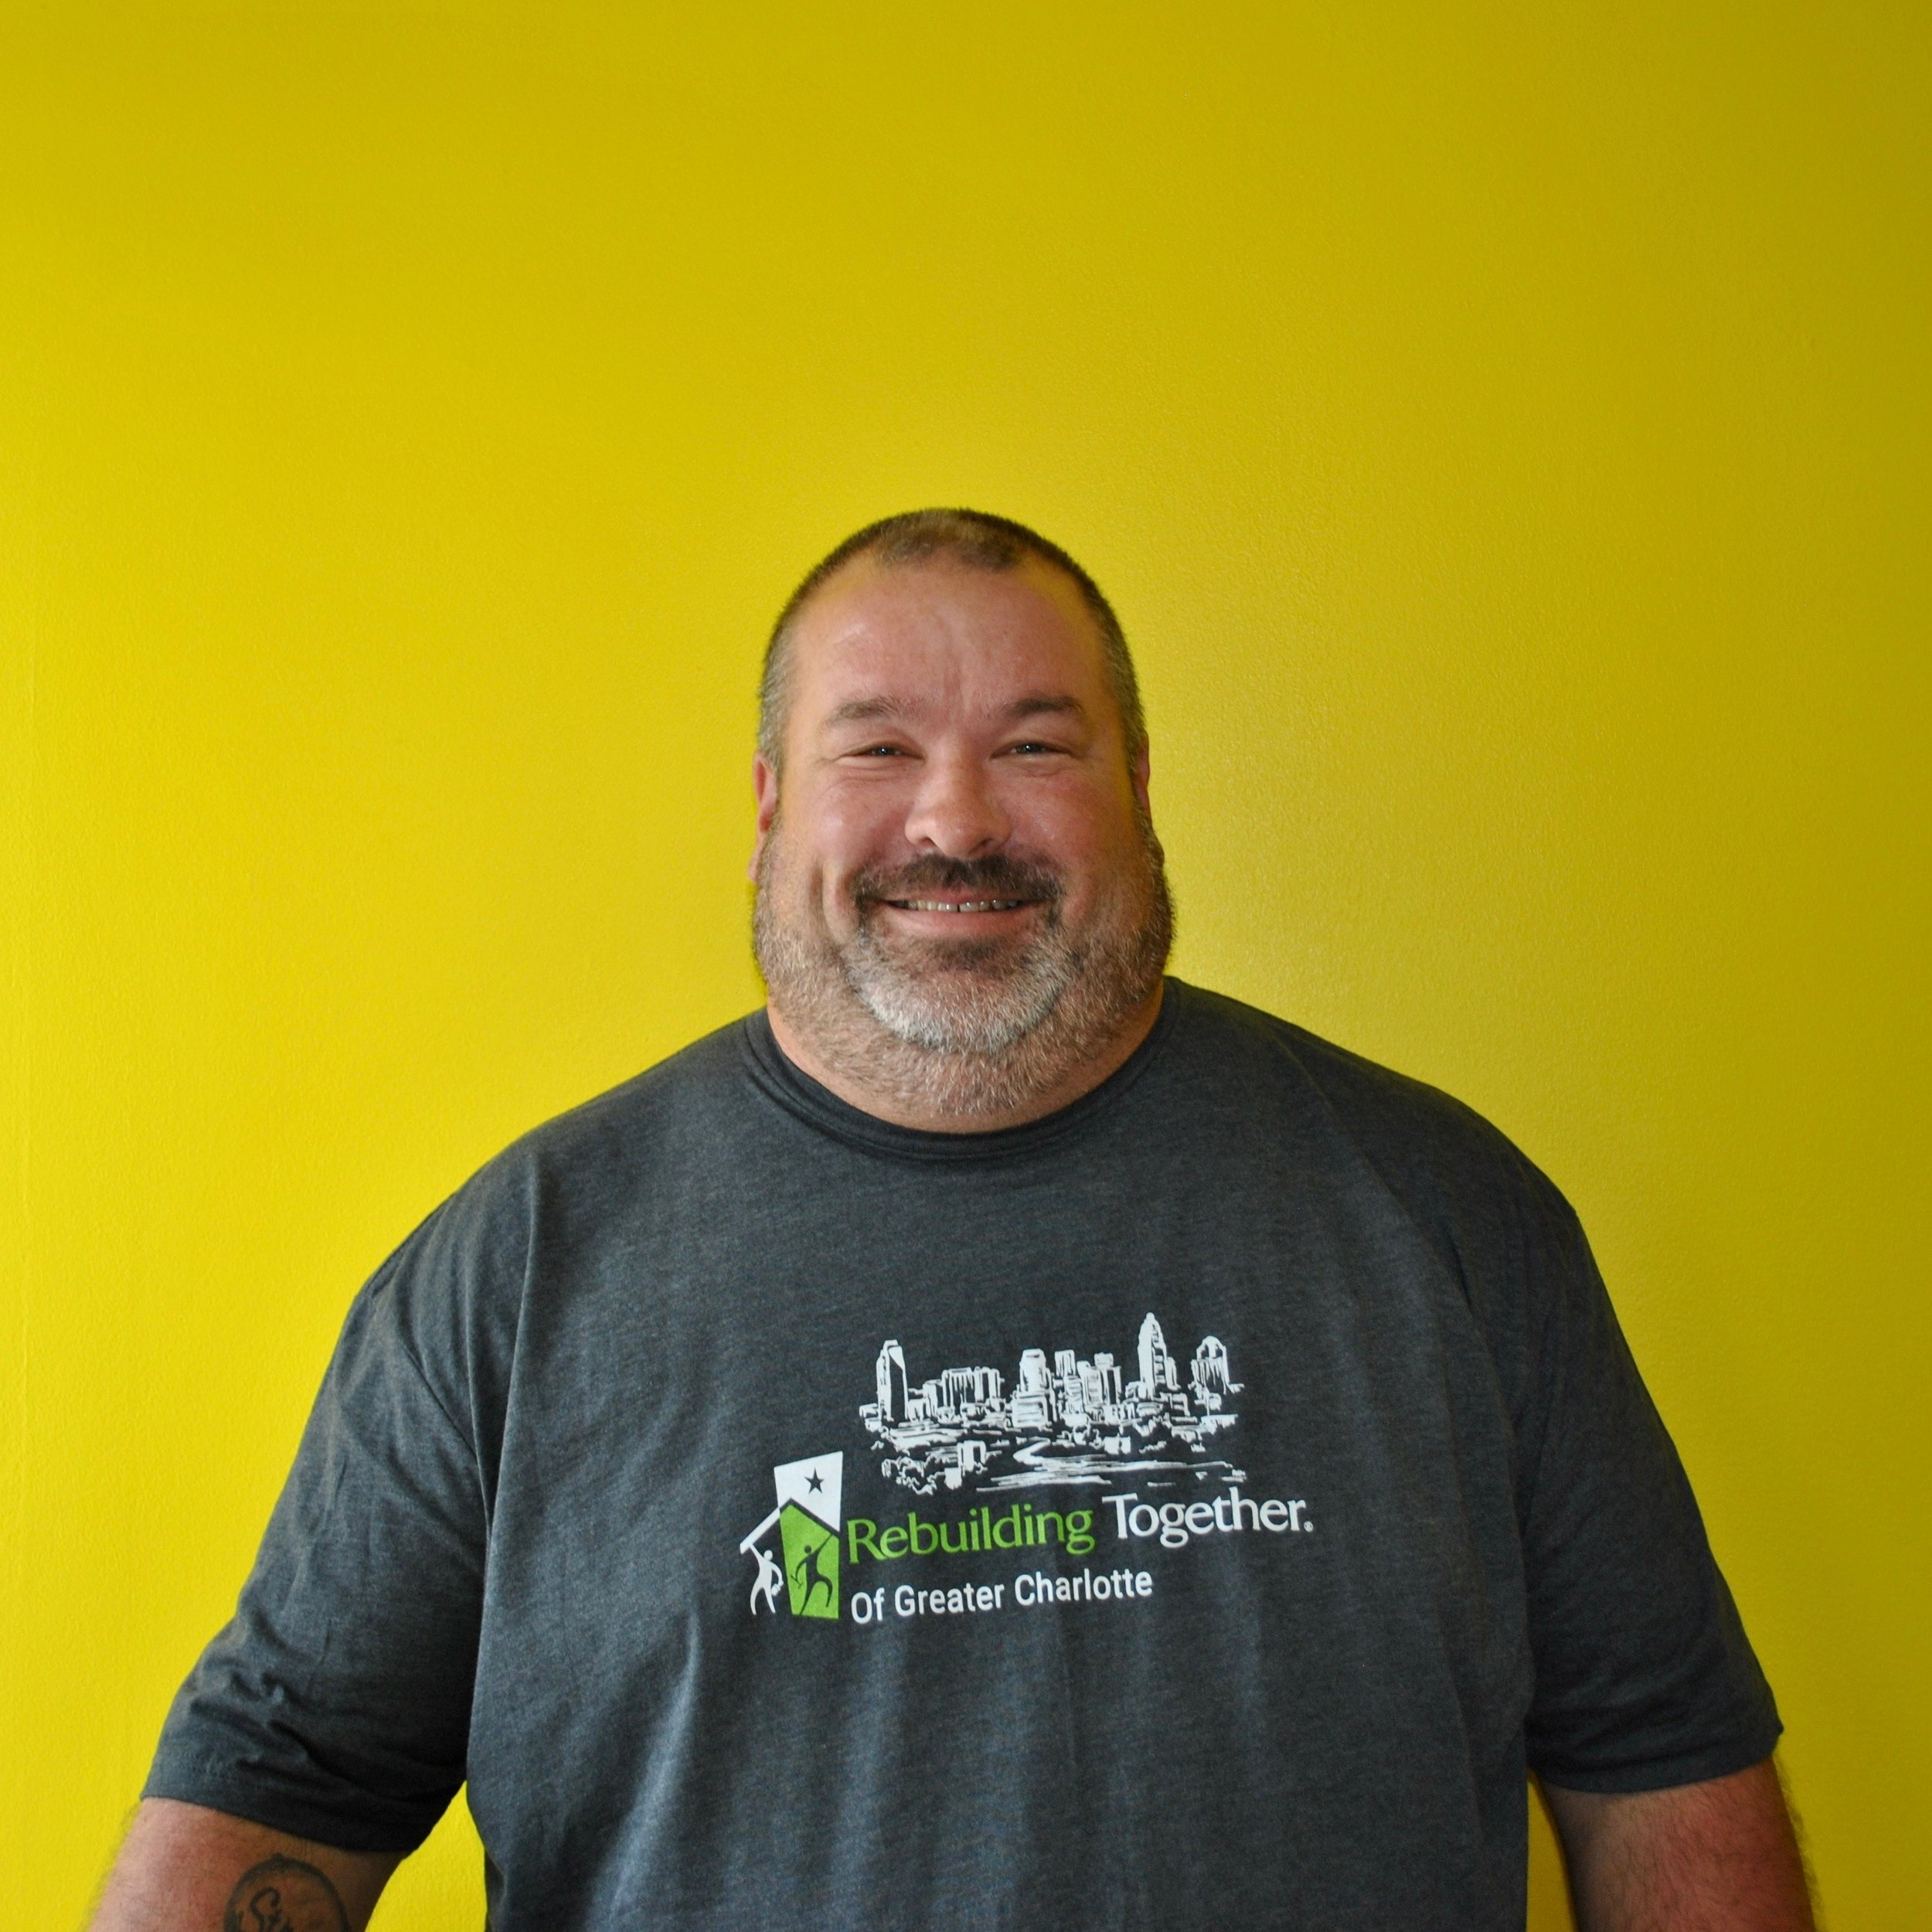 Brian Legassie - Construction Managerblegassie@rebuildingtogetherCLT.orgFavorite Word: AwesomeStrength: OrganizationBrian is in charge of overseeing all of construction, developing work scopes, ordering project materials, coordinating skilled trades, and so much more.He has been building and remodeling homes since he was 14 years old and enjoys it because he loves working with his hands. Brian picked working within the nonprofit sector because he wants to give back.